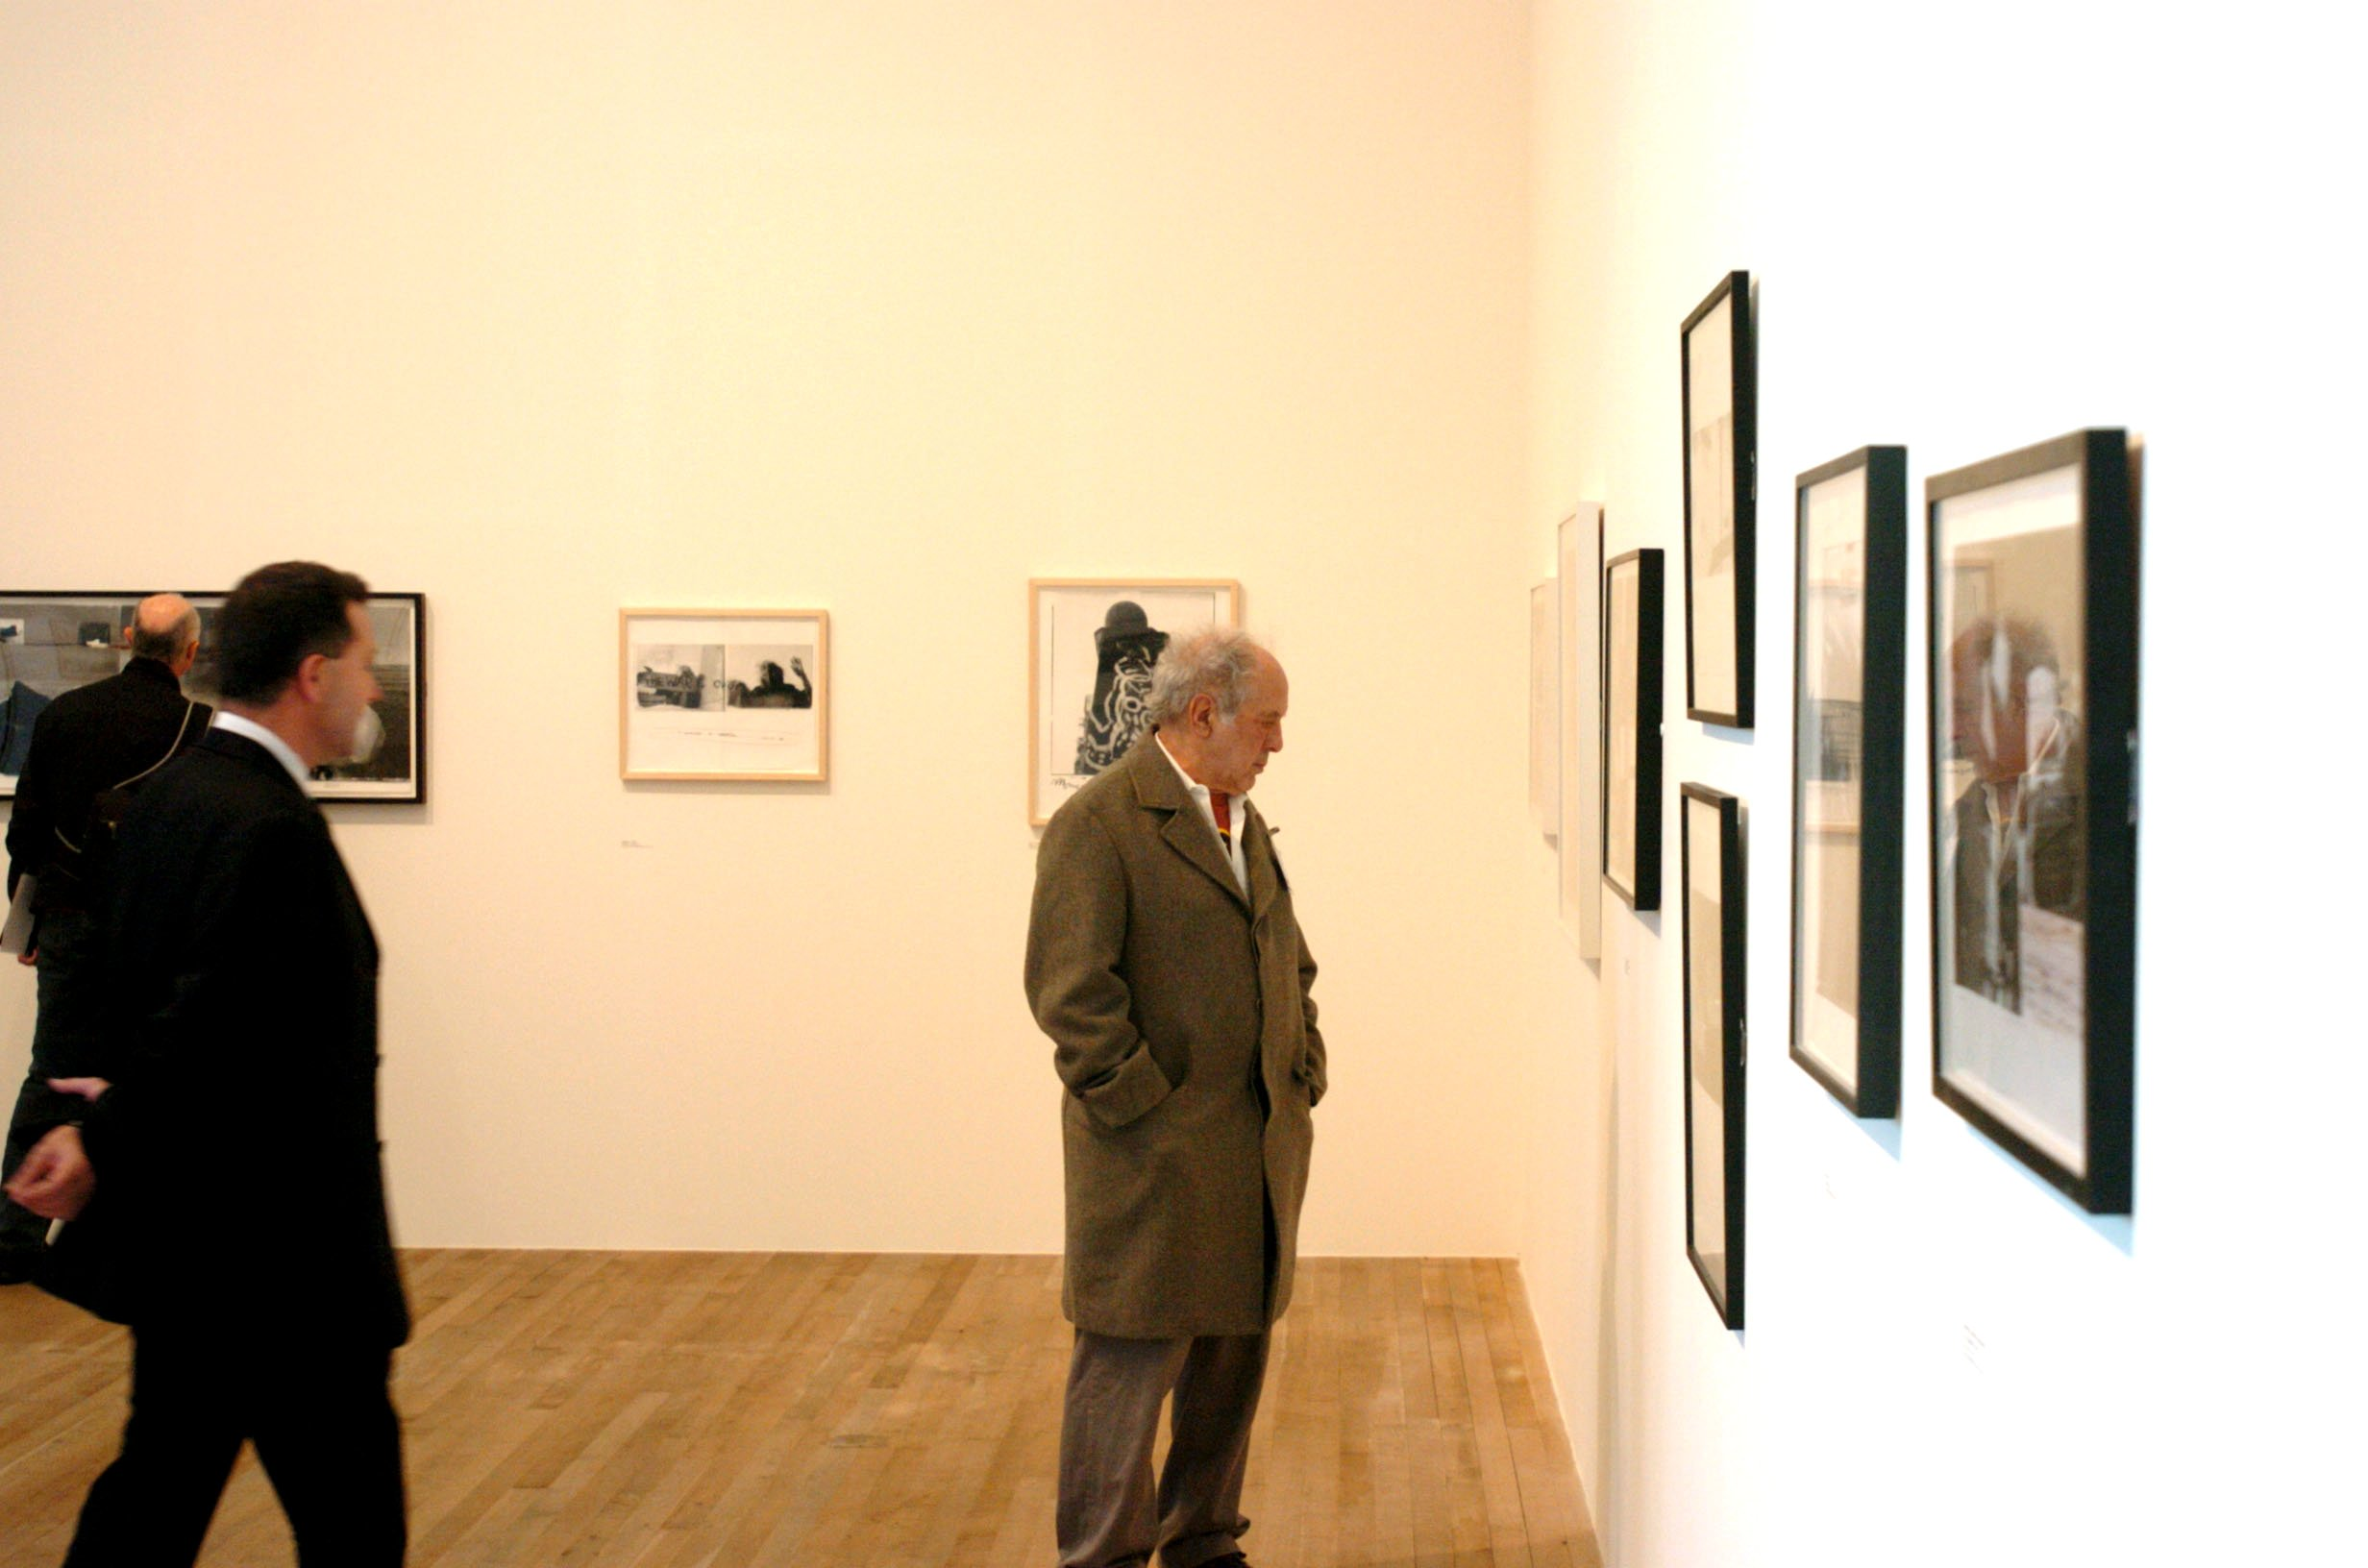 Vincente Todoli, curator of the exhibition and director of Tate Modern, with Robert FrankROBERT FRANK AT THE FIRST MAJOR BRITISH RETROSPECTIVE OF HIS WORK ENTITLED 'STORYLINES', TATE MODERN, LONDON, BRITAIN - 26 OCT 2004